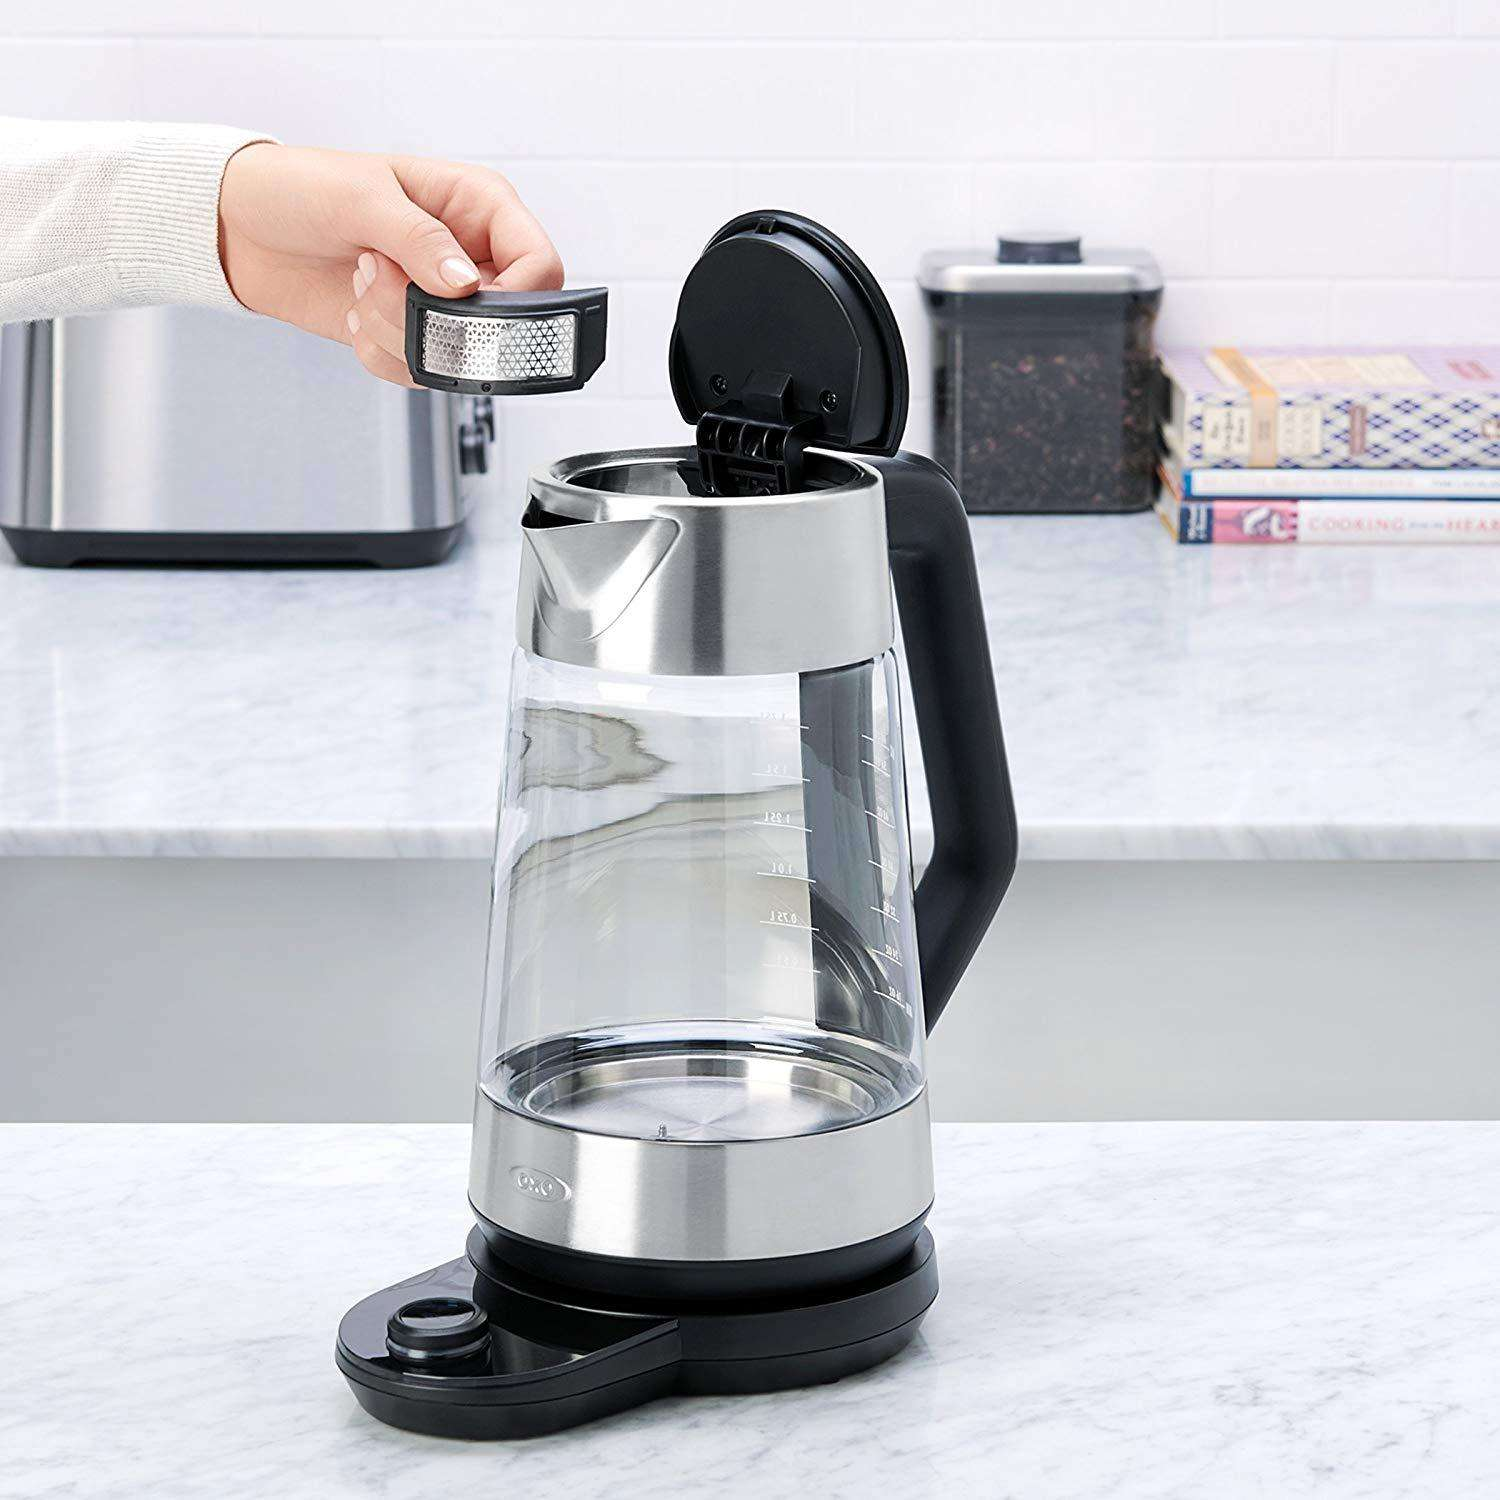 OXO Tea Kettle Review – Part 2